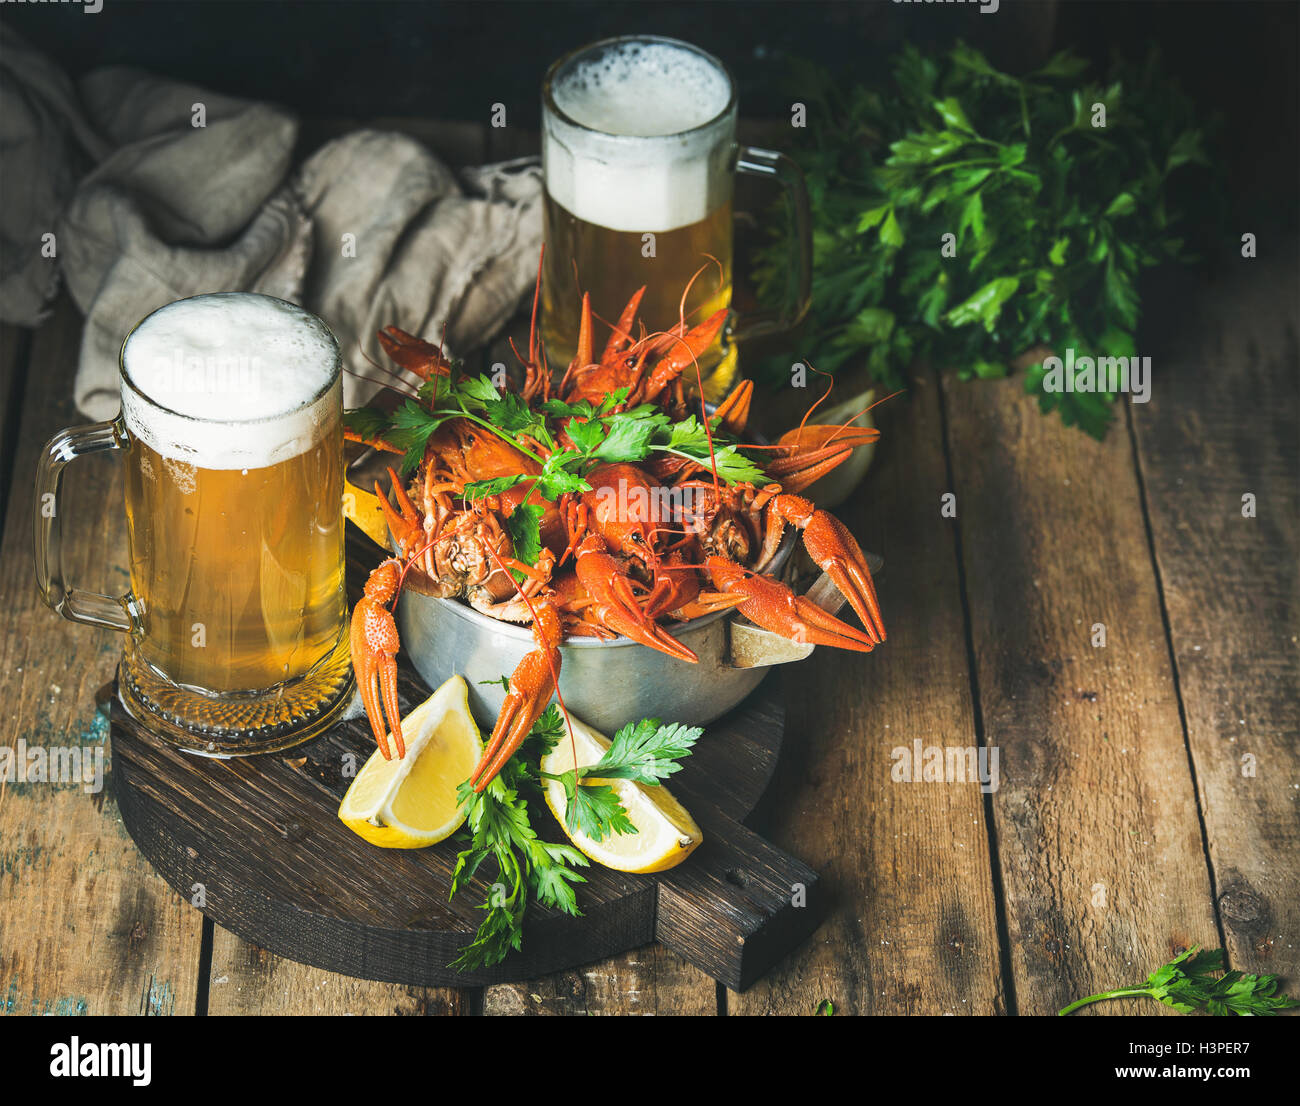 Wheat beer and boiled crayfish with lemon, fresh parsley - Stock Image